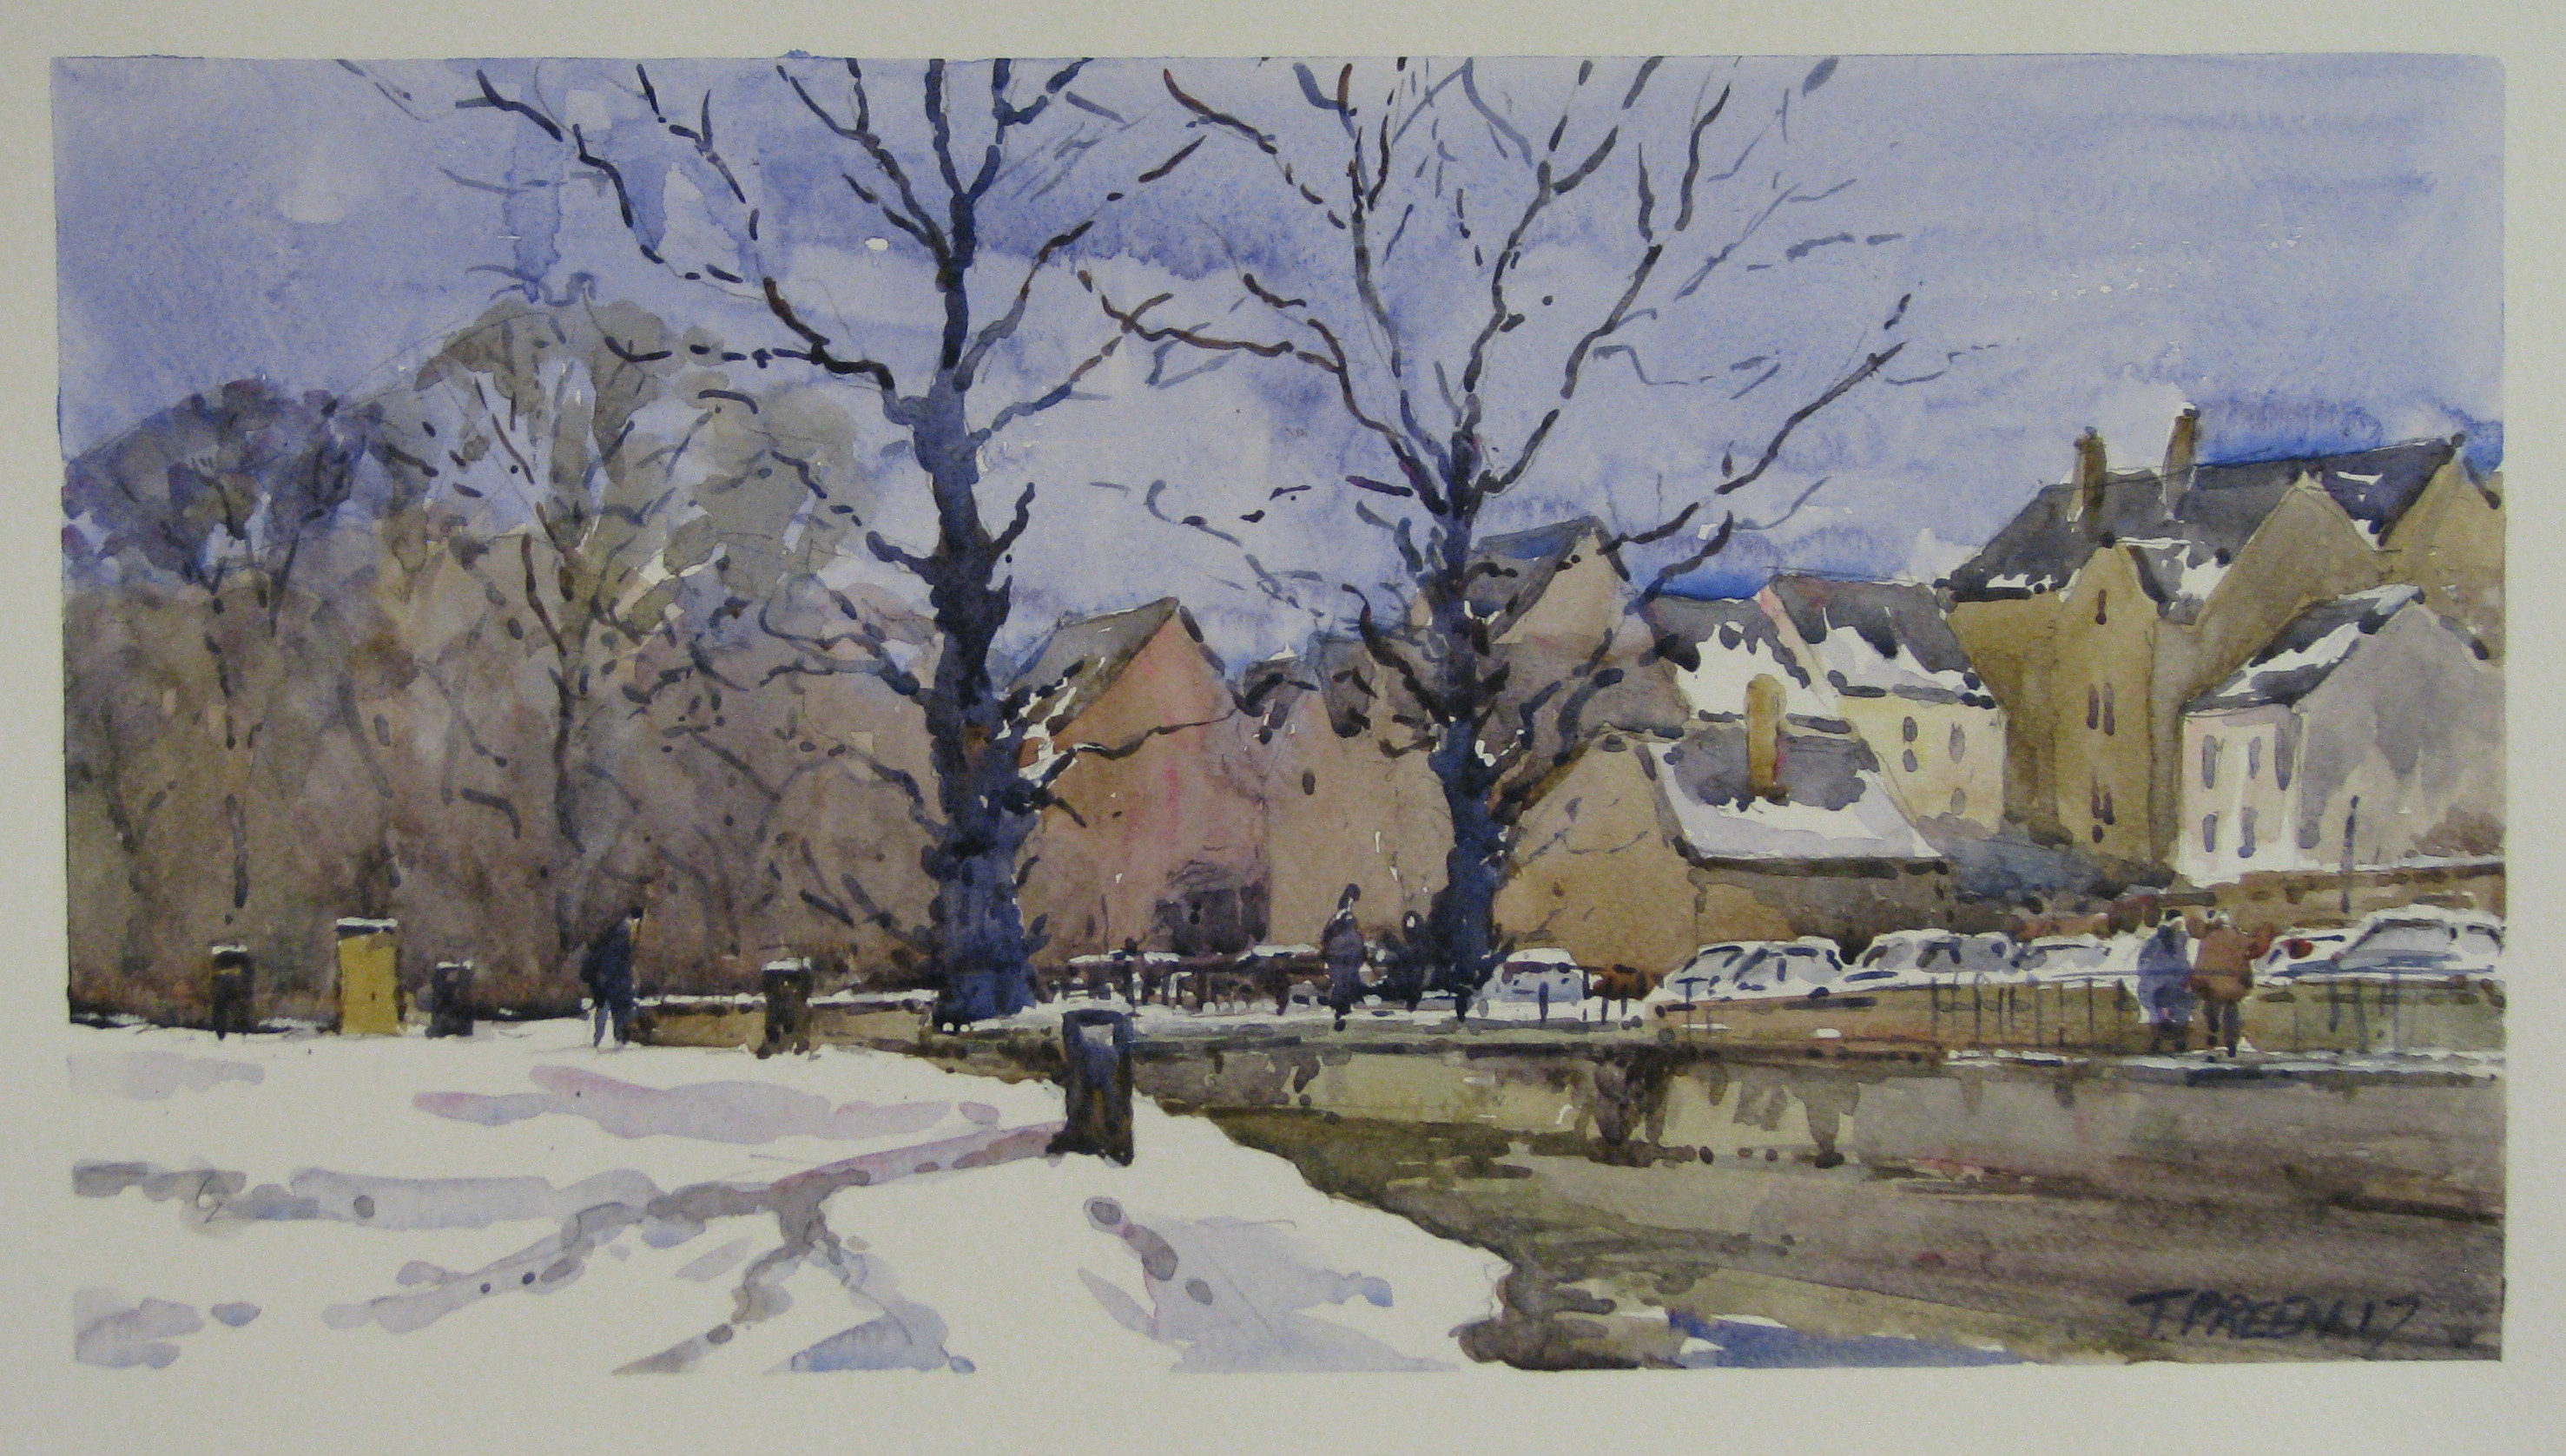 A Wonderful Opportunity to see the latest inspiring watercolours by Terry Preen